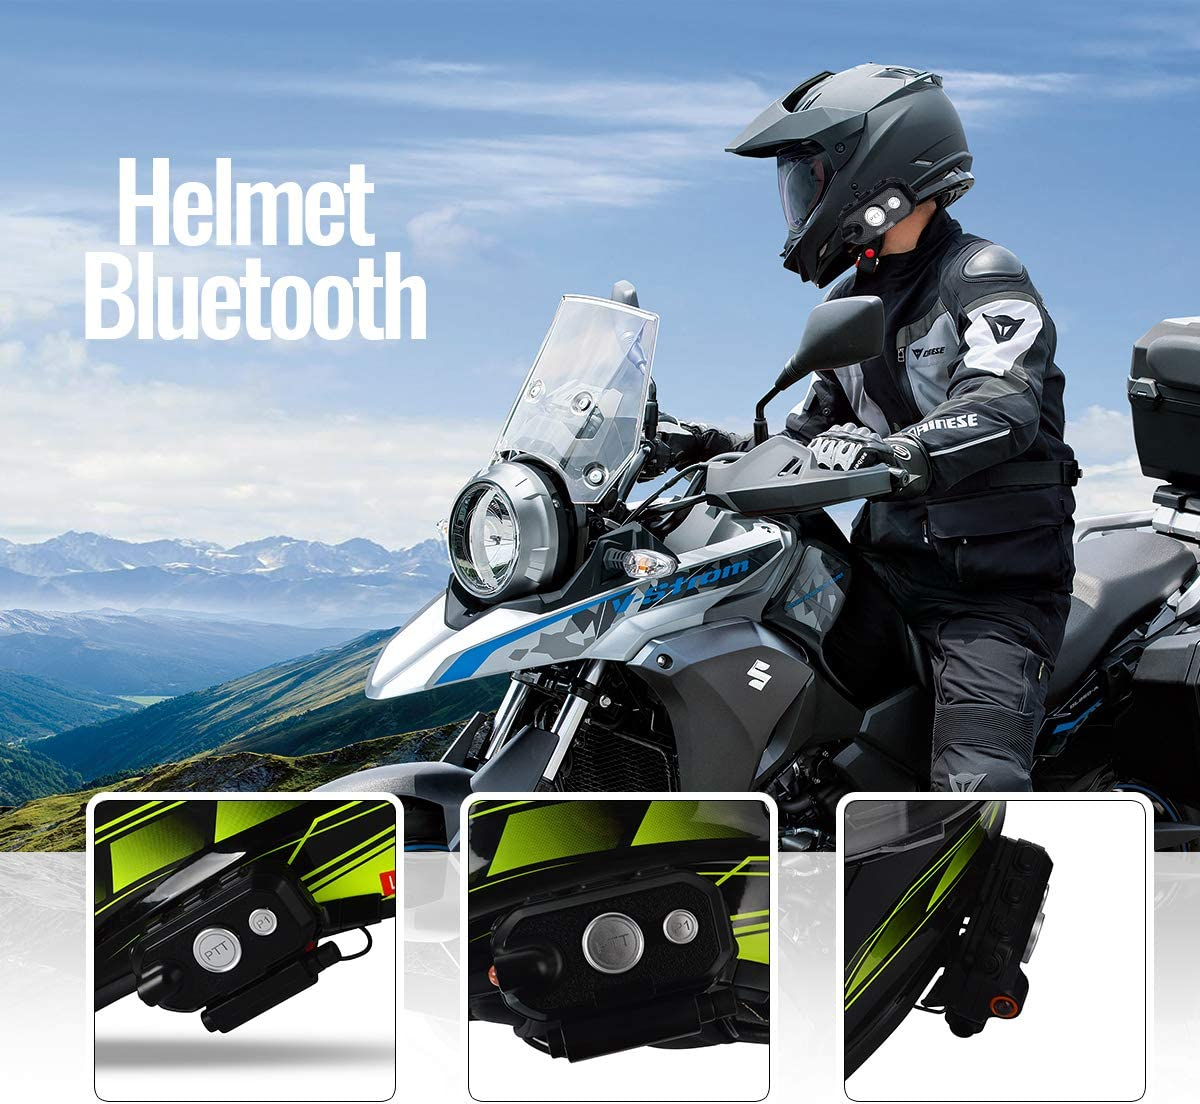 HYS Helmet Bluetooth Stereophonic Sound Headset Motorcycle Communication System Wireless Waterproof Headphone with Noise Cancellation for Motorbike Skiing